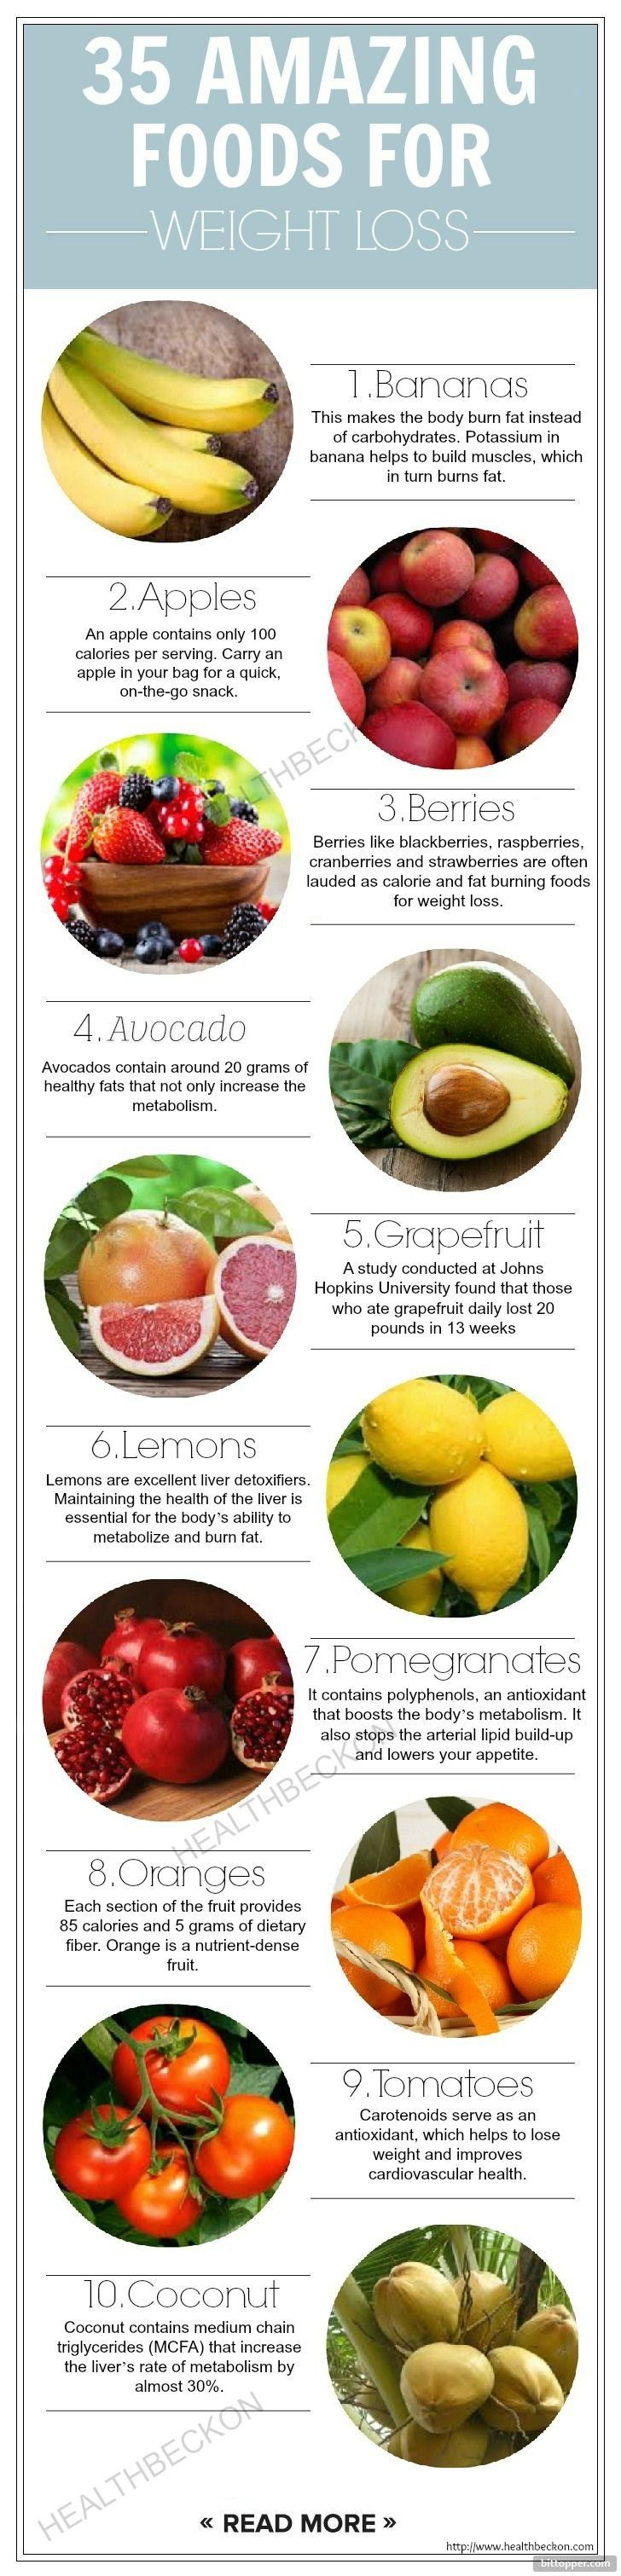 The Ultimate List - 35 Amazing Foods For Weight Loss via https://www.bittopper.com/post.php?id=66766794d25a0a9eb045a91145dcae86f98d9